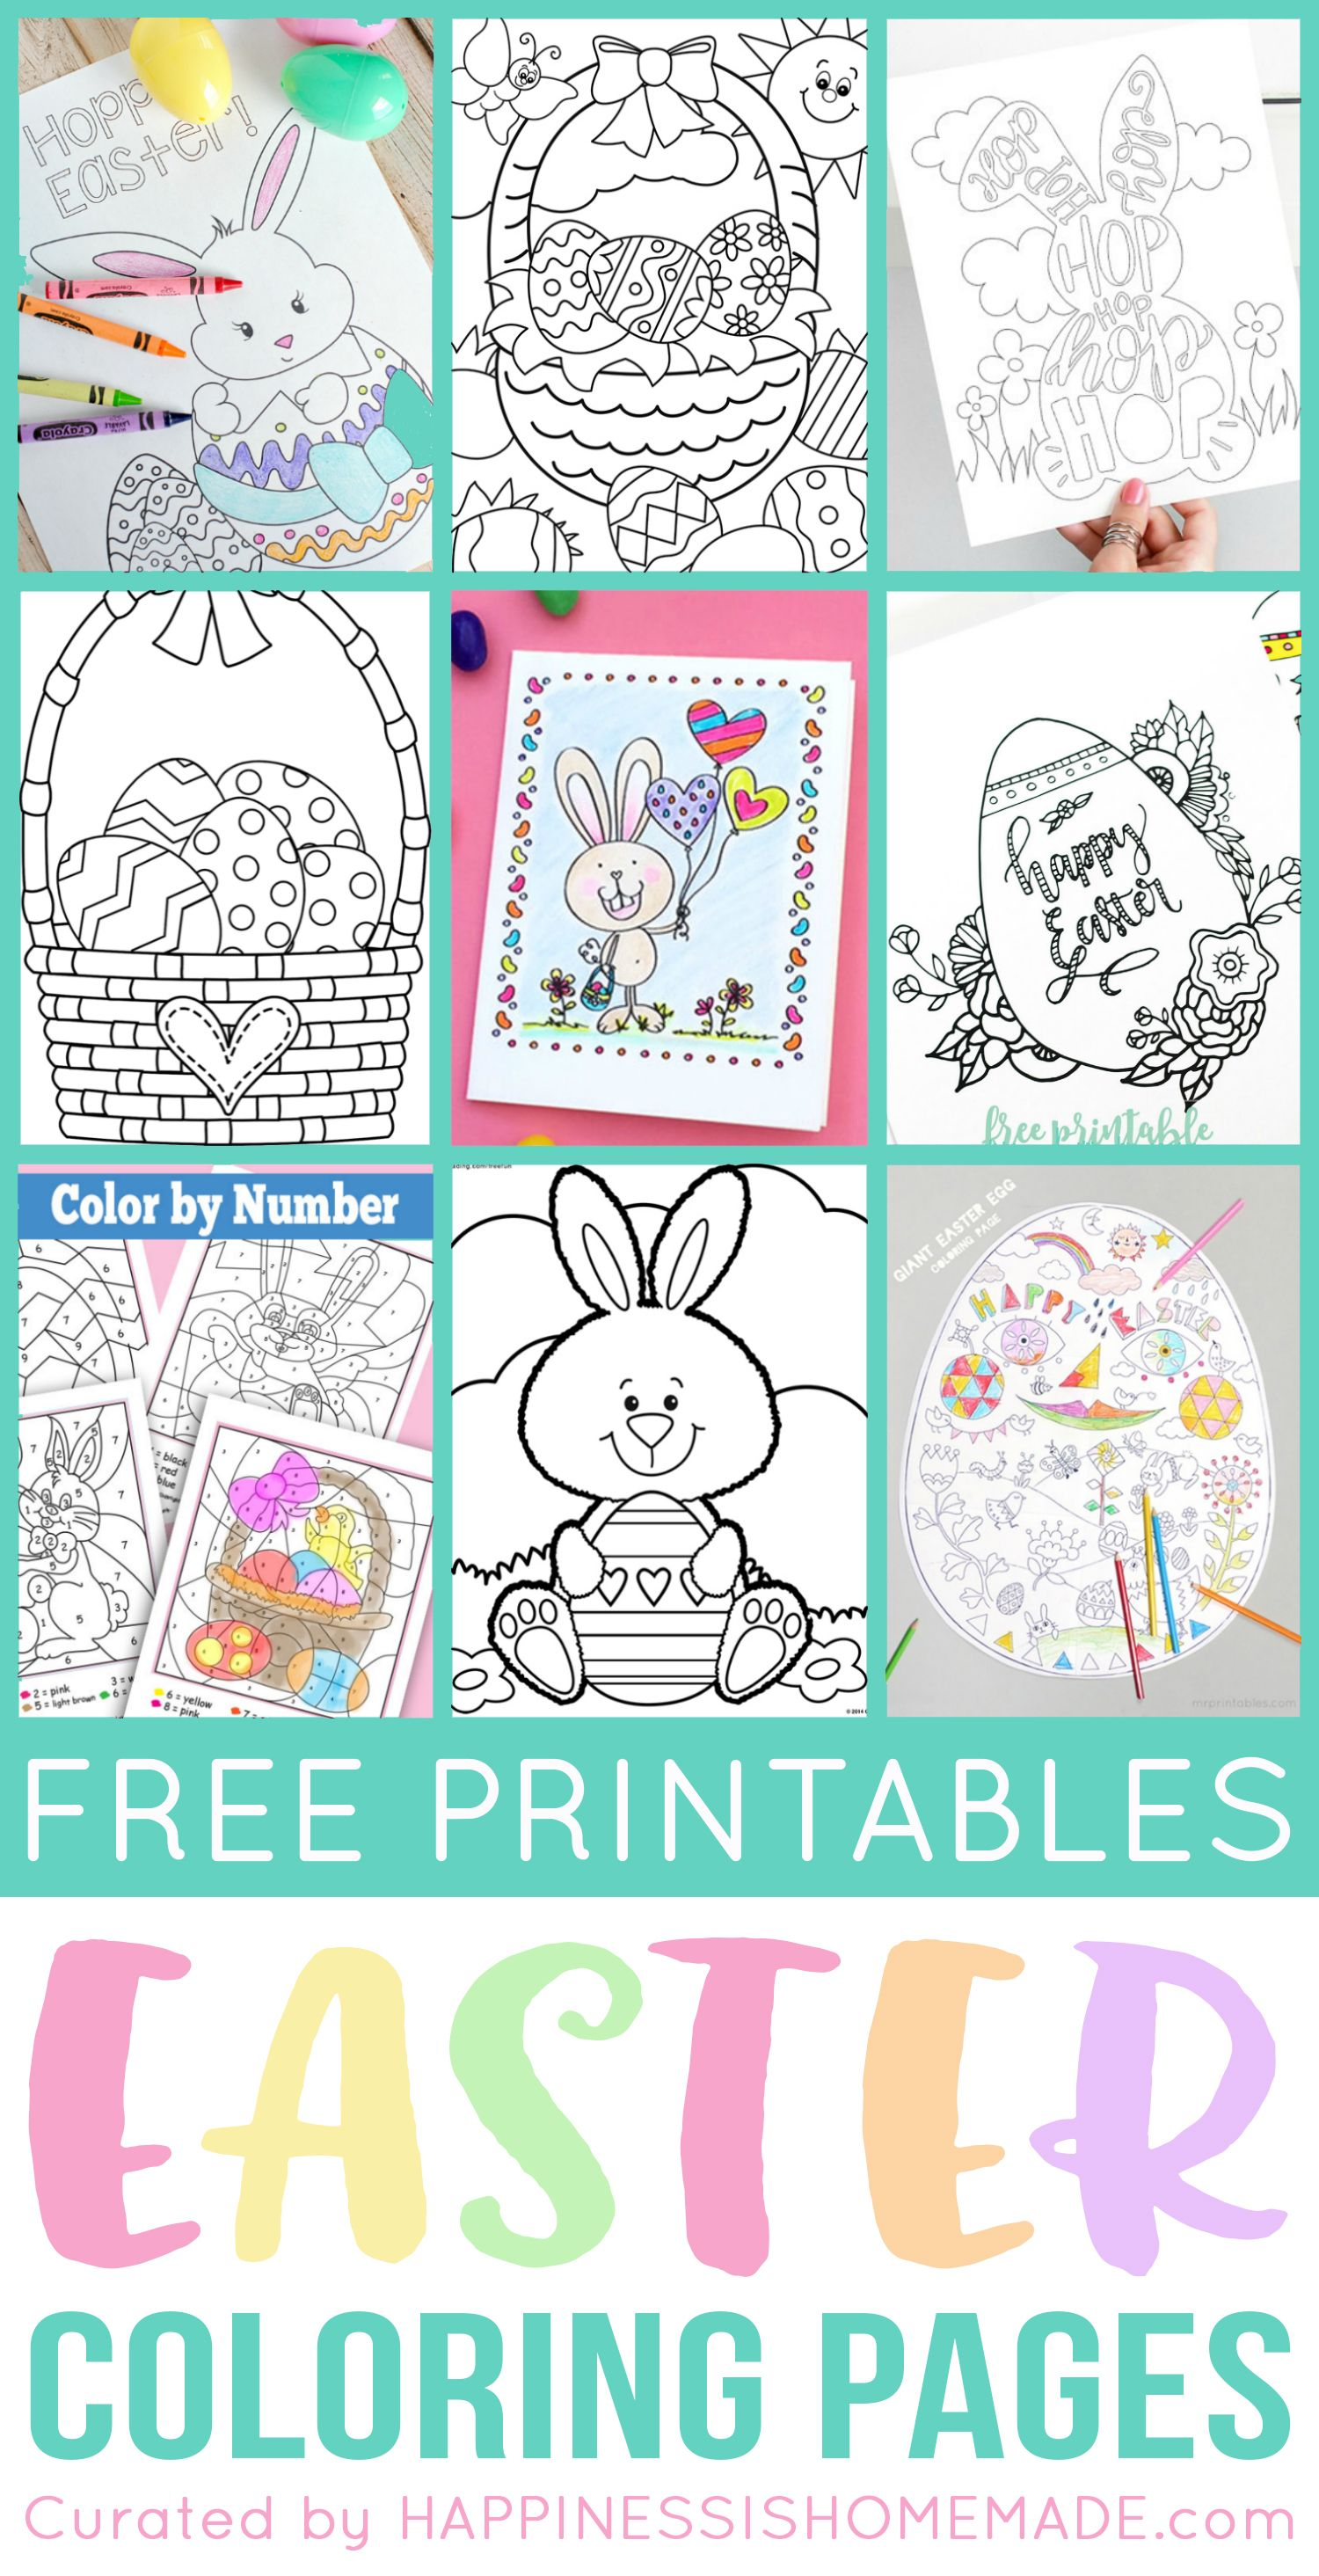 Free printable easter coloring pages are fun for kids of all ages